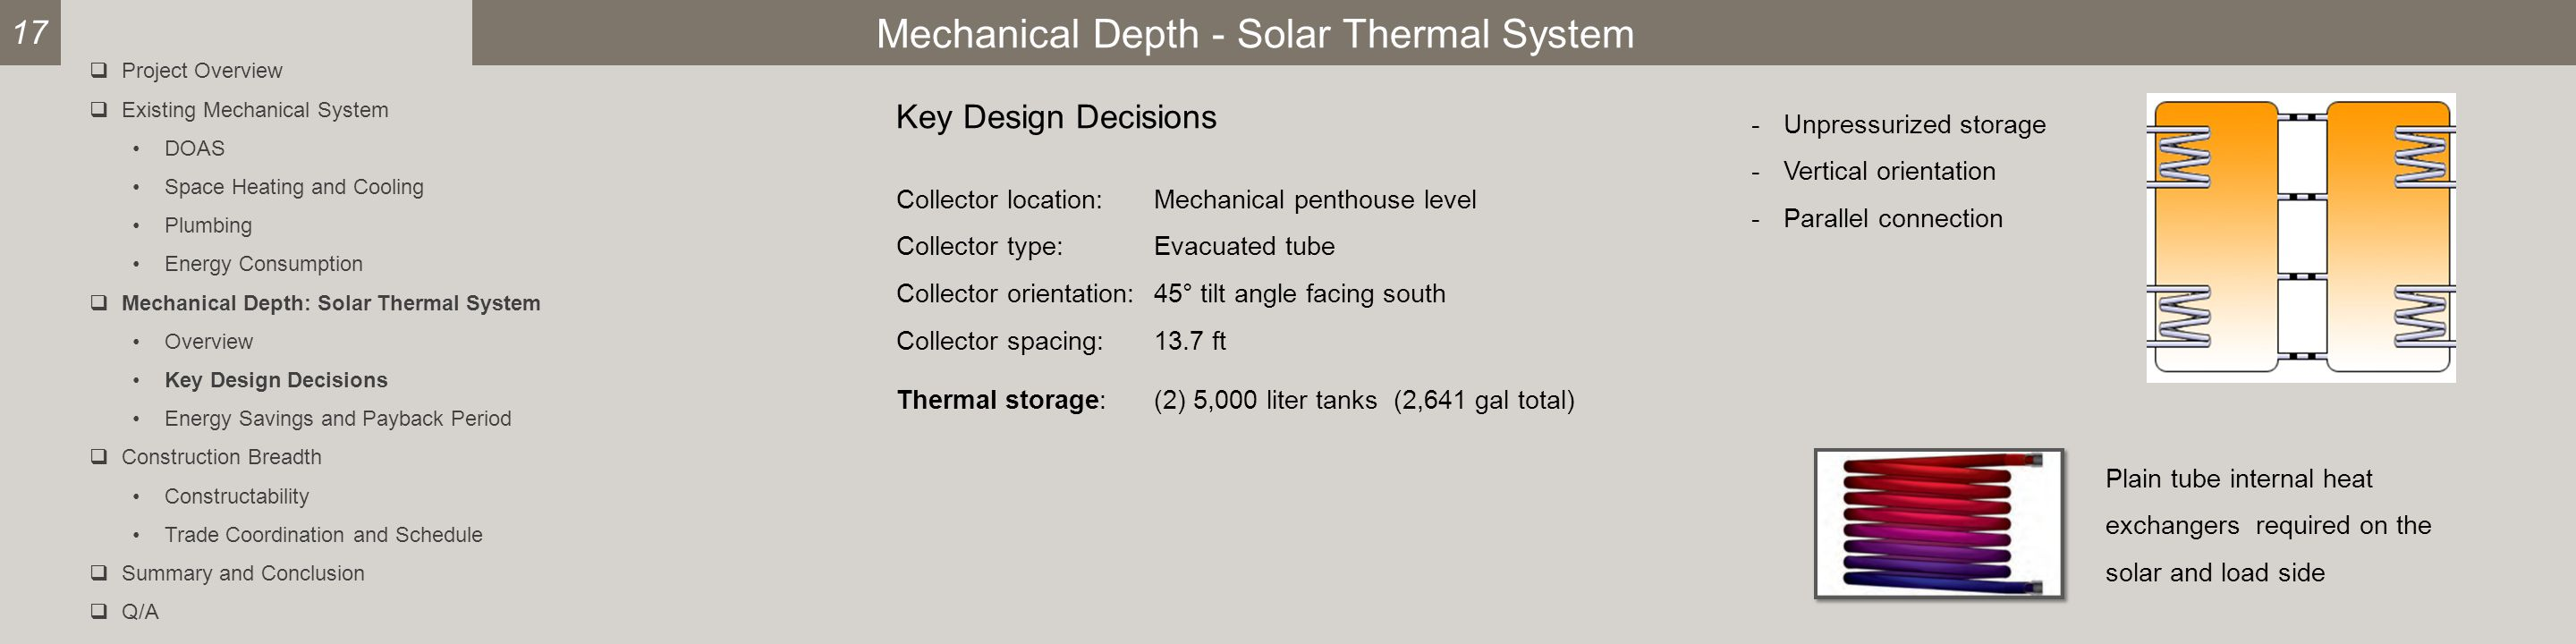 Mechanical Depth - Solar Thermal System Key Design Decisions Collector location:Mechanical penthouse level Collector type:Evacuated tube Collector orientation:45° tilt angle facing south Collector spacing:13.7 ft Thermal storage:(2) 5,000 liter tanks (2,641 gal total) 17 -Unpressurized storage -Vertical orientation -Parallel connection Plain tube internal heat exchangers required on the solar and load side  Project Overview  Existing Mechanical System DOAS Space Heating and Cooling Plumbing Energy Consumption  Mechanical Depth: Solar Thermal System Overview Key Design Decisions Energy Savings and Payback Period  Construction Breadth Constructability Trade Coordination and Schedule  Summary and Conclusion  Q/A